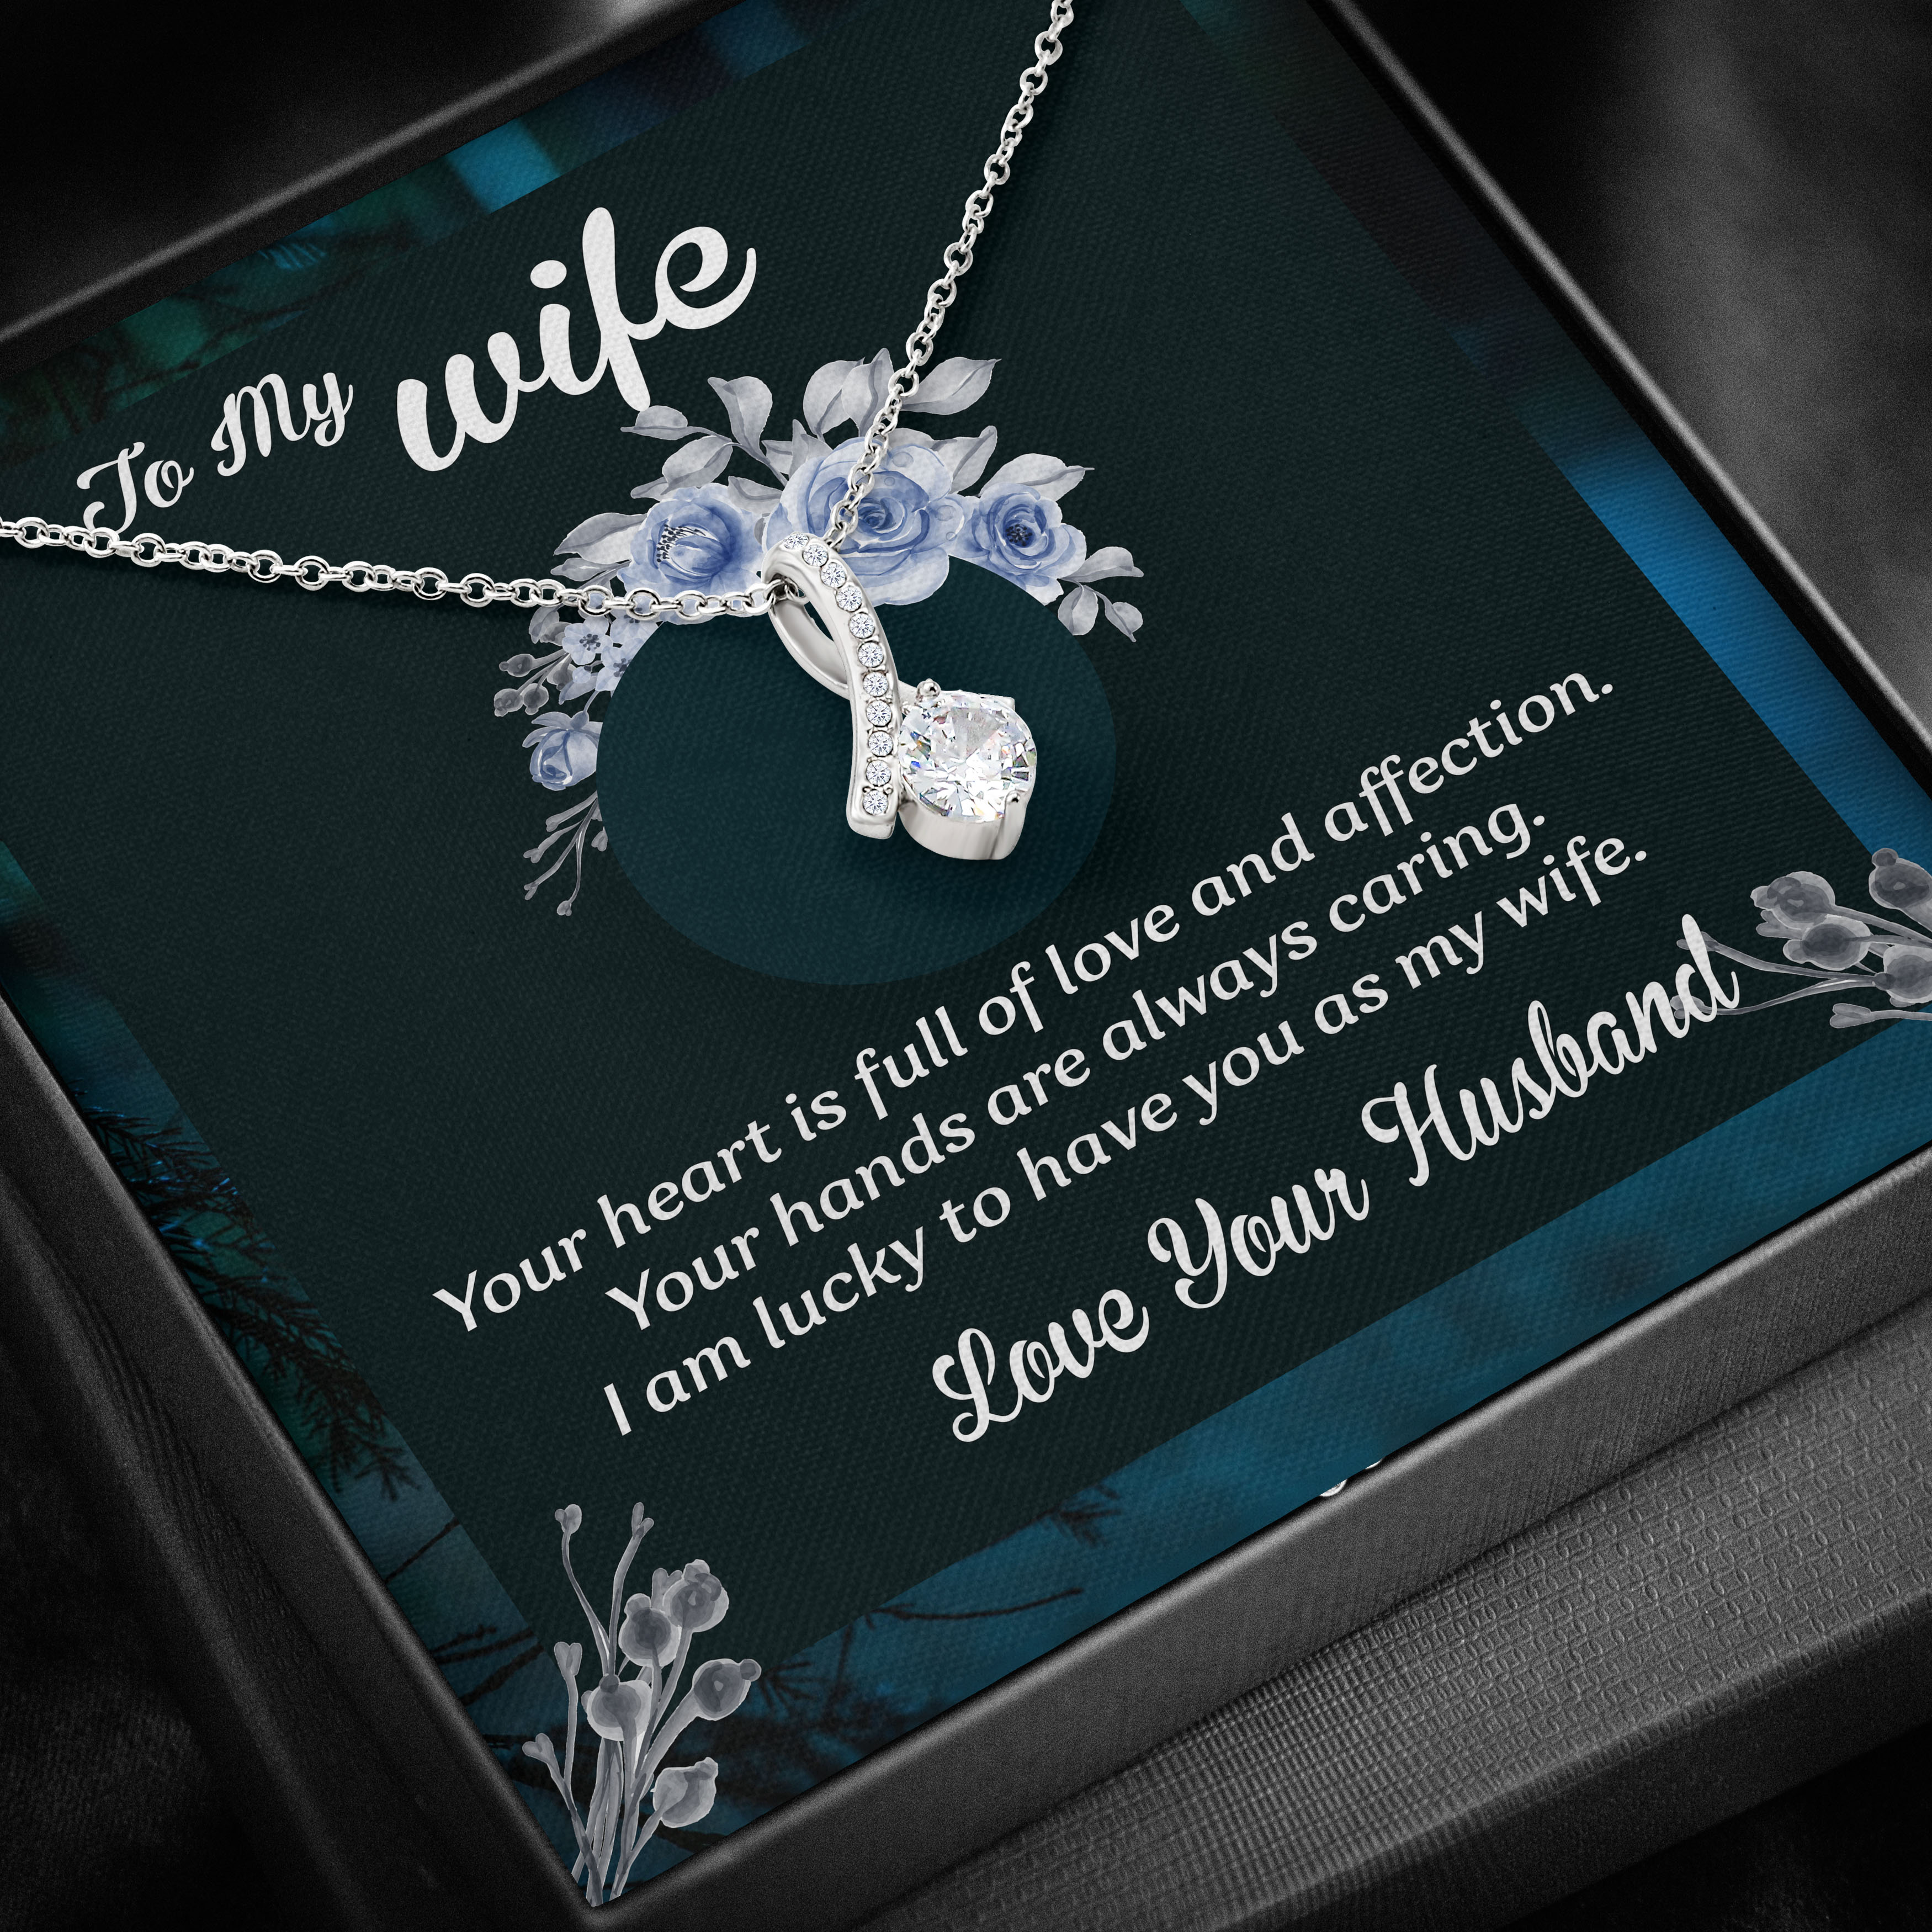 I will design exclusive gearbubble,  shineon necklaces,  message cards